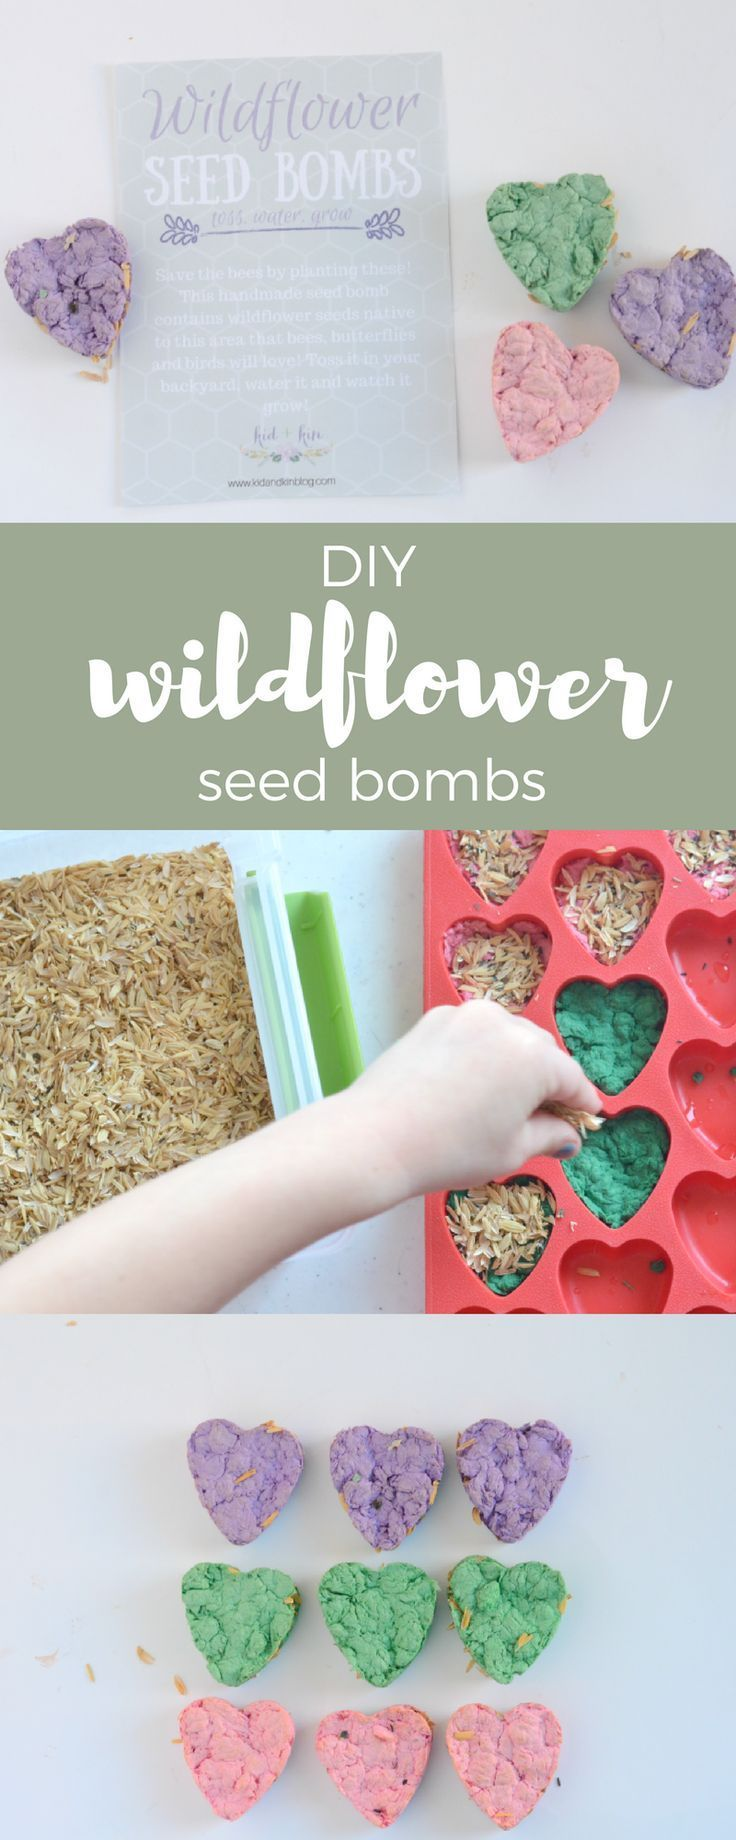 Kind Kids Club: DIY Wildflower Seed Bombs – Kid + Kin #TriplePFeature